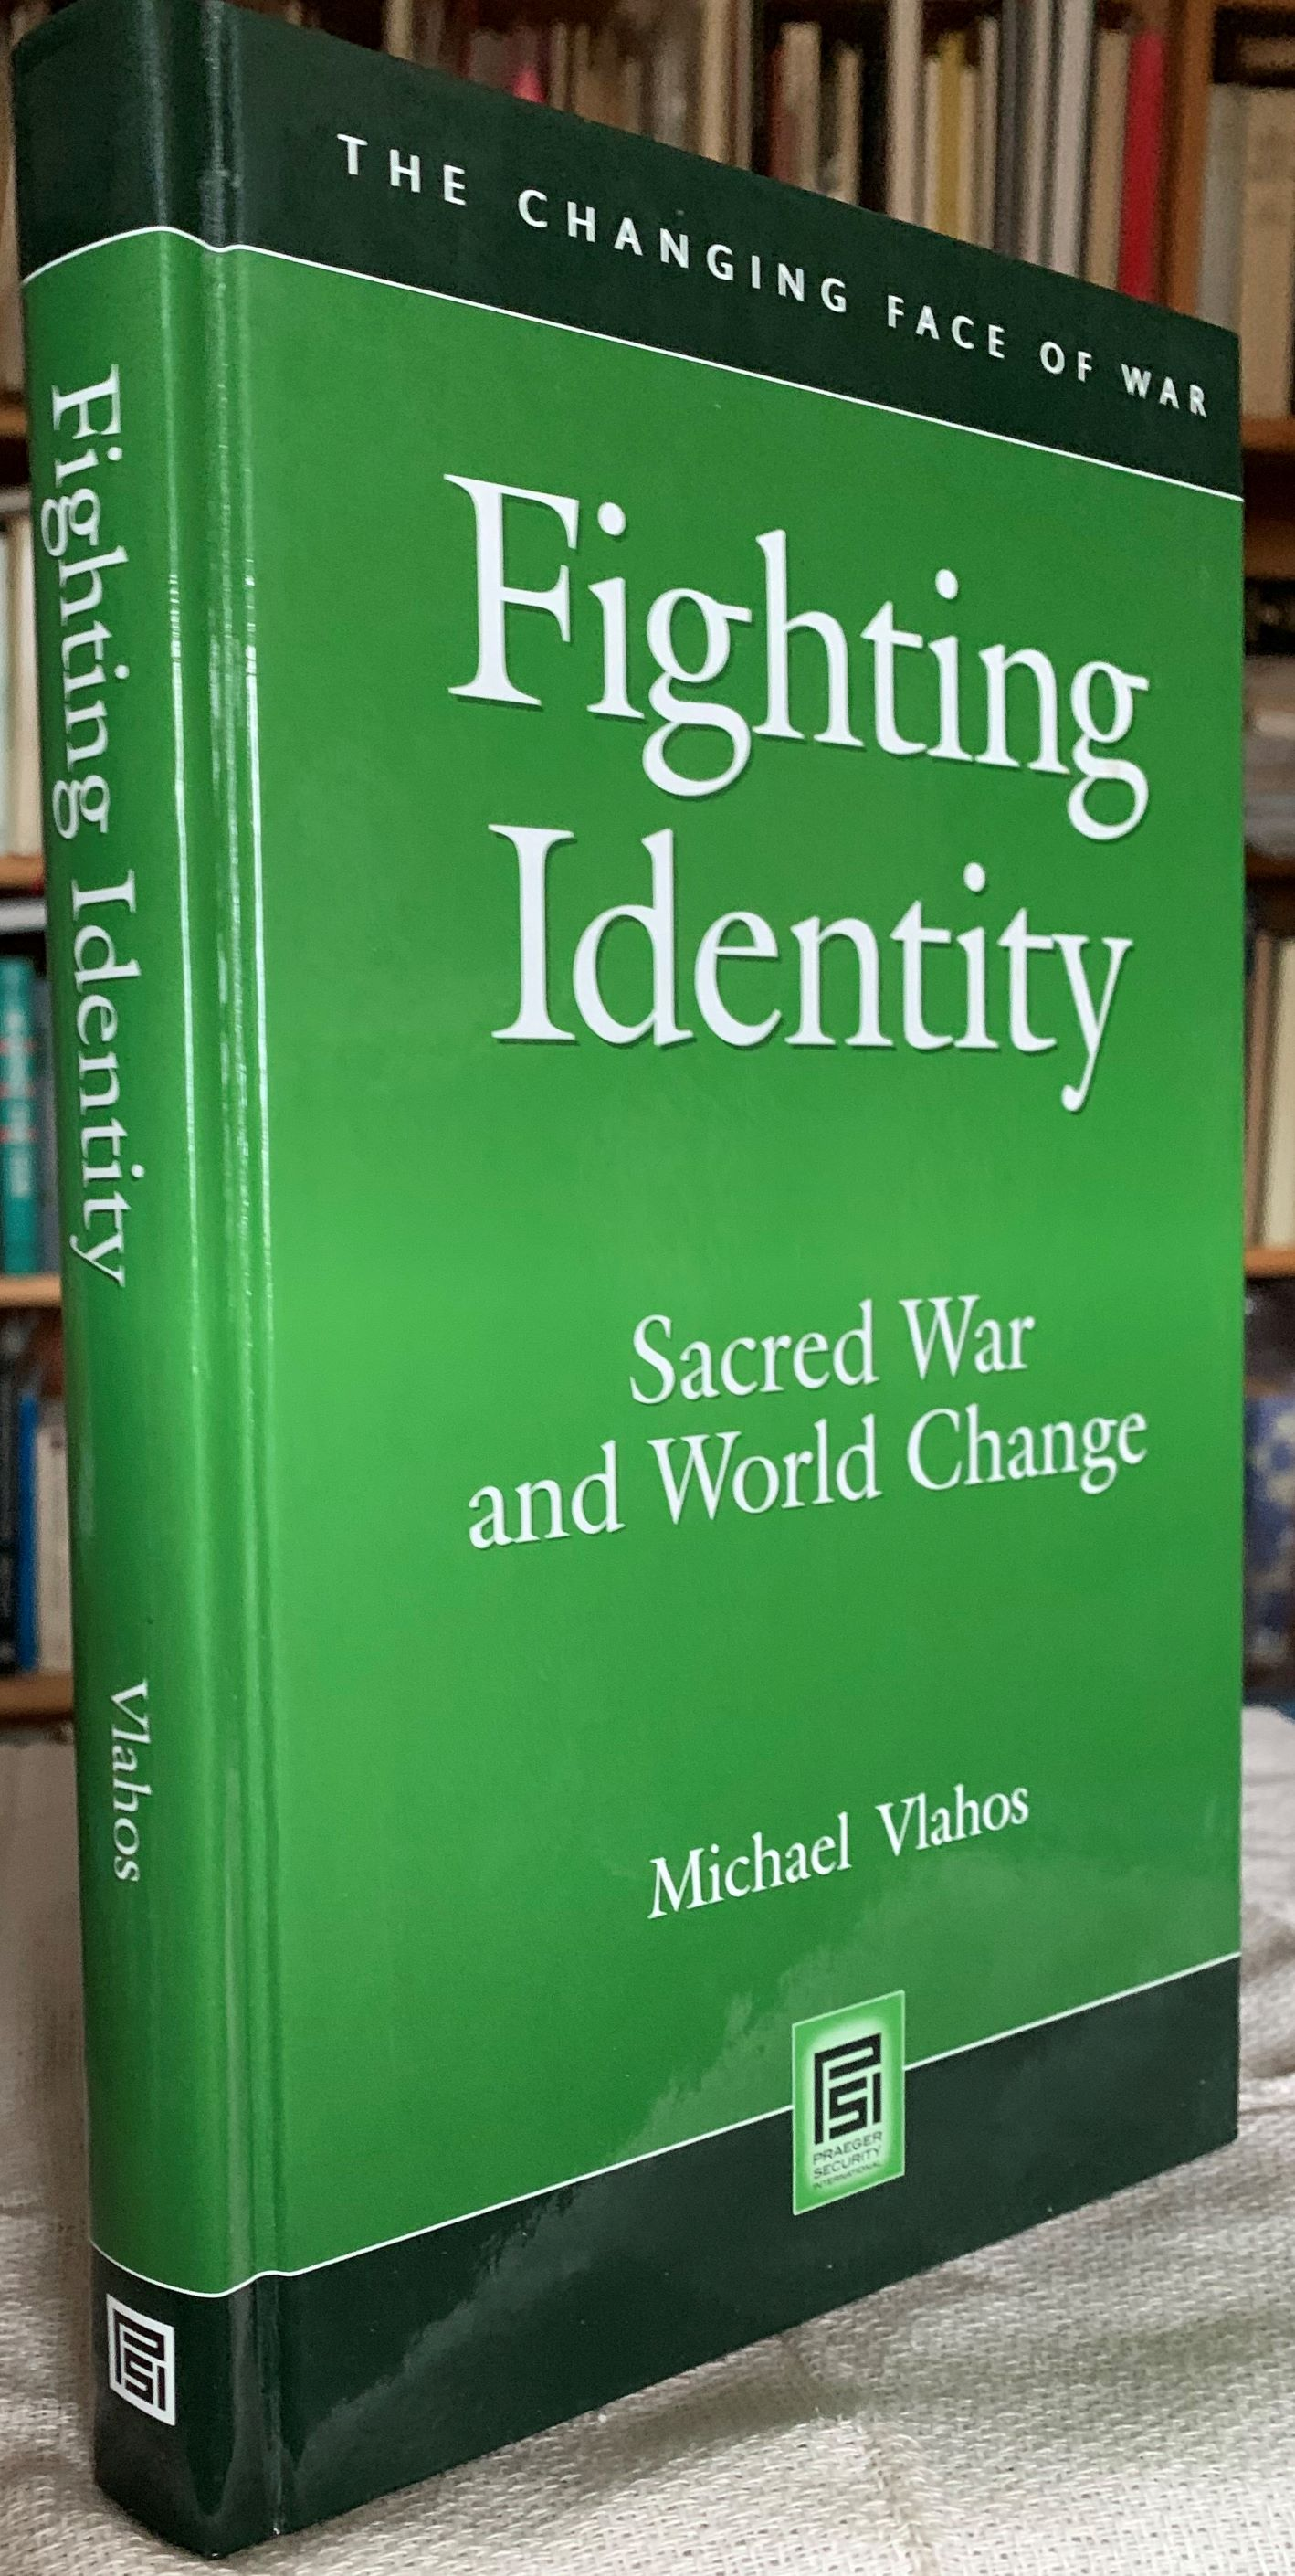 Image for Fighting Identity, Sacred War and World Change.